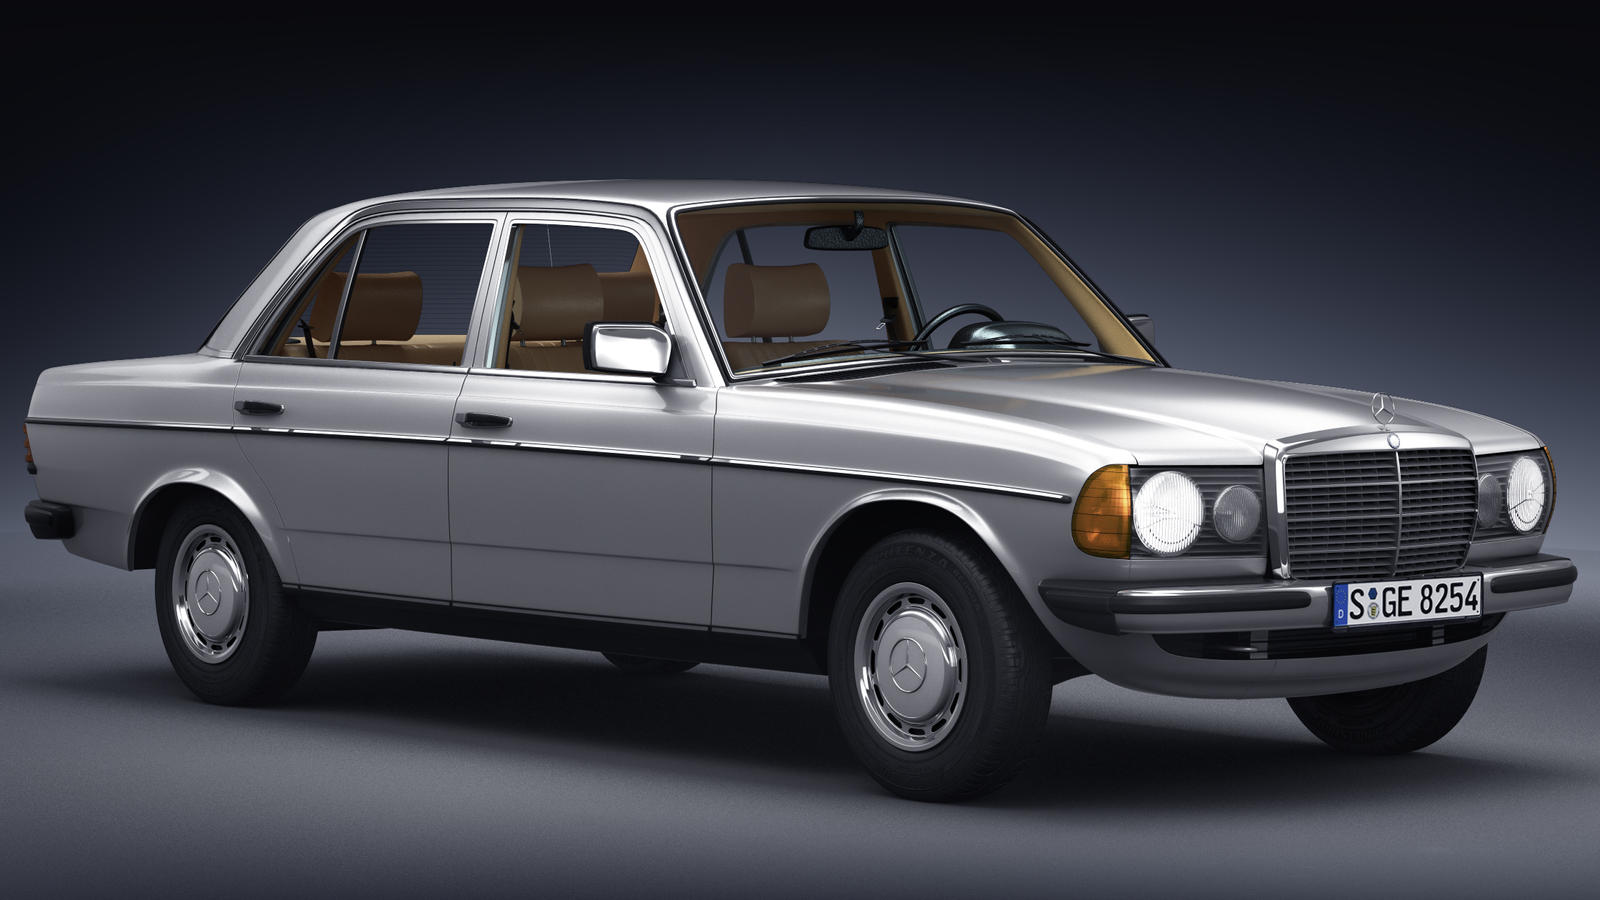 Mercedes benz 230e w123 youngtimer by splicer436 on deviantart for Mercedes benz 230e